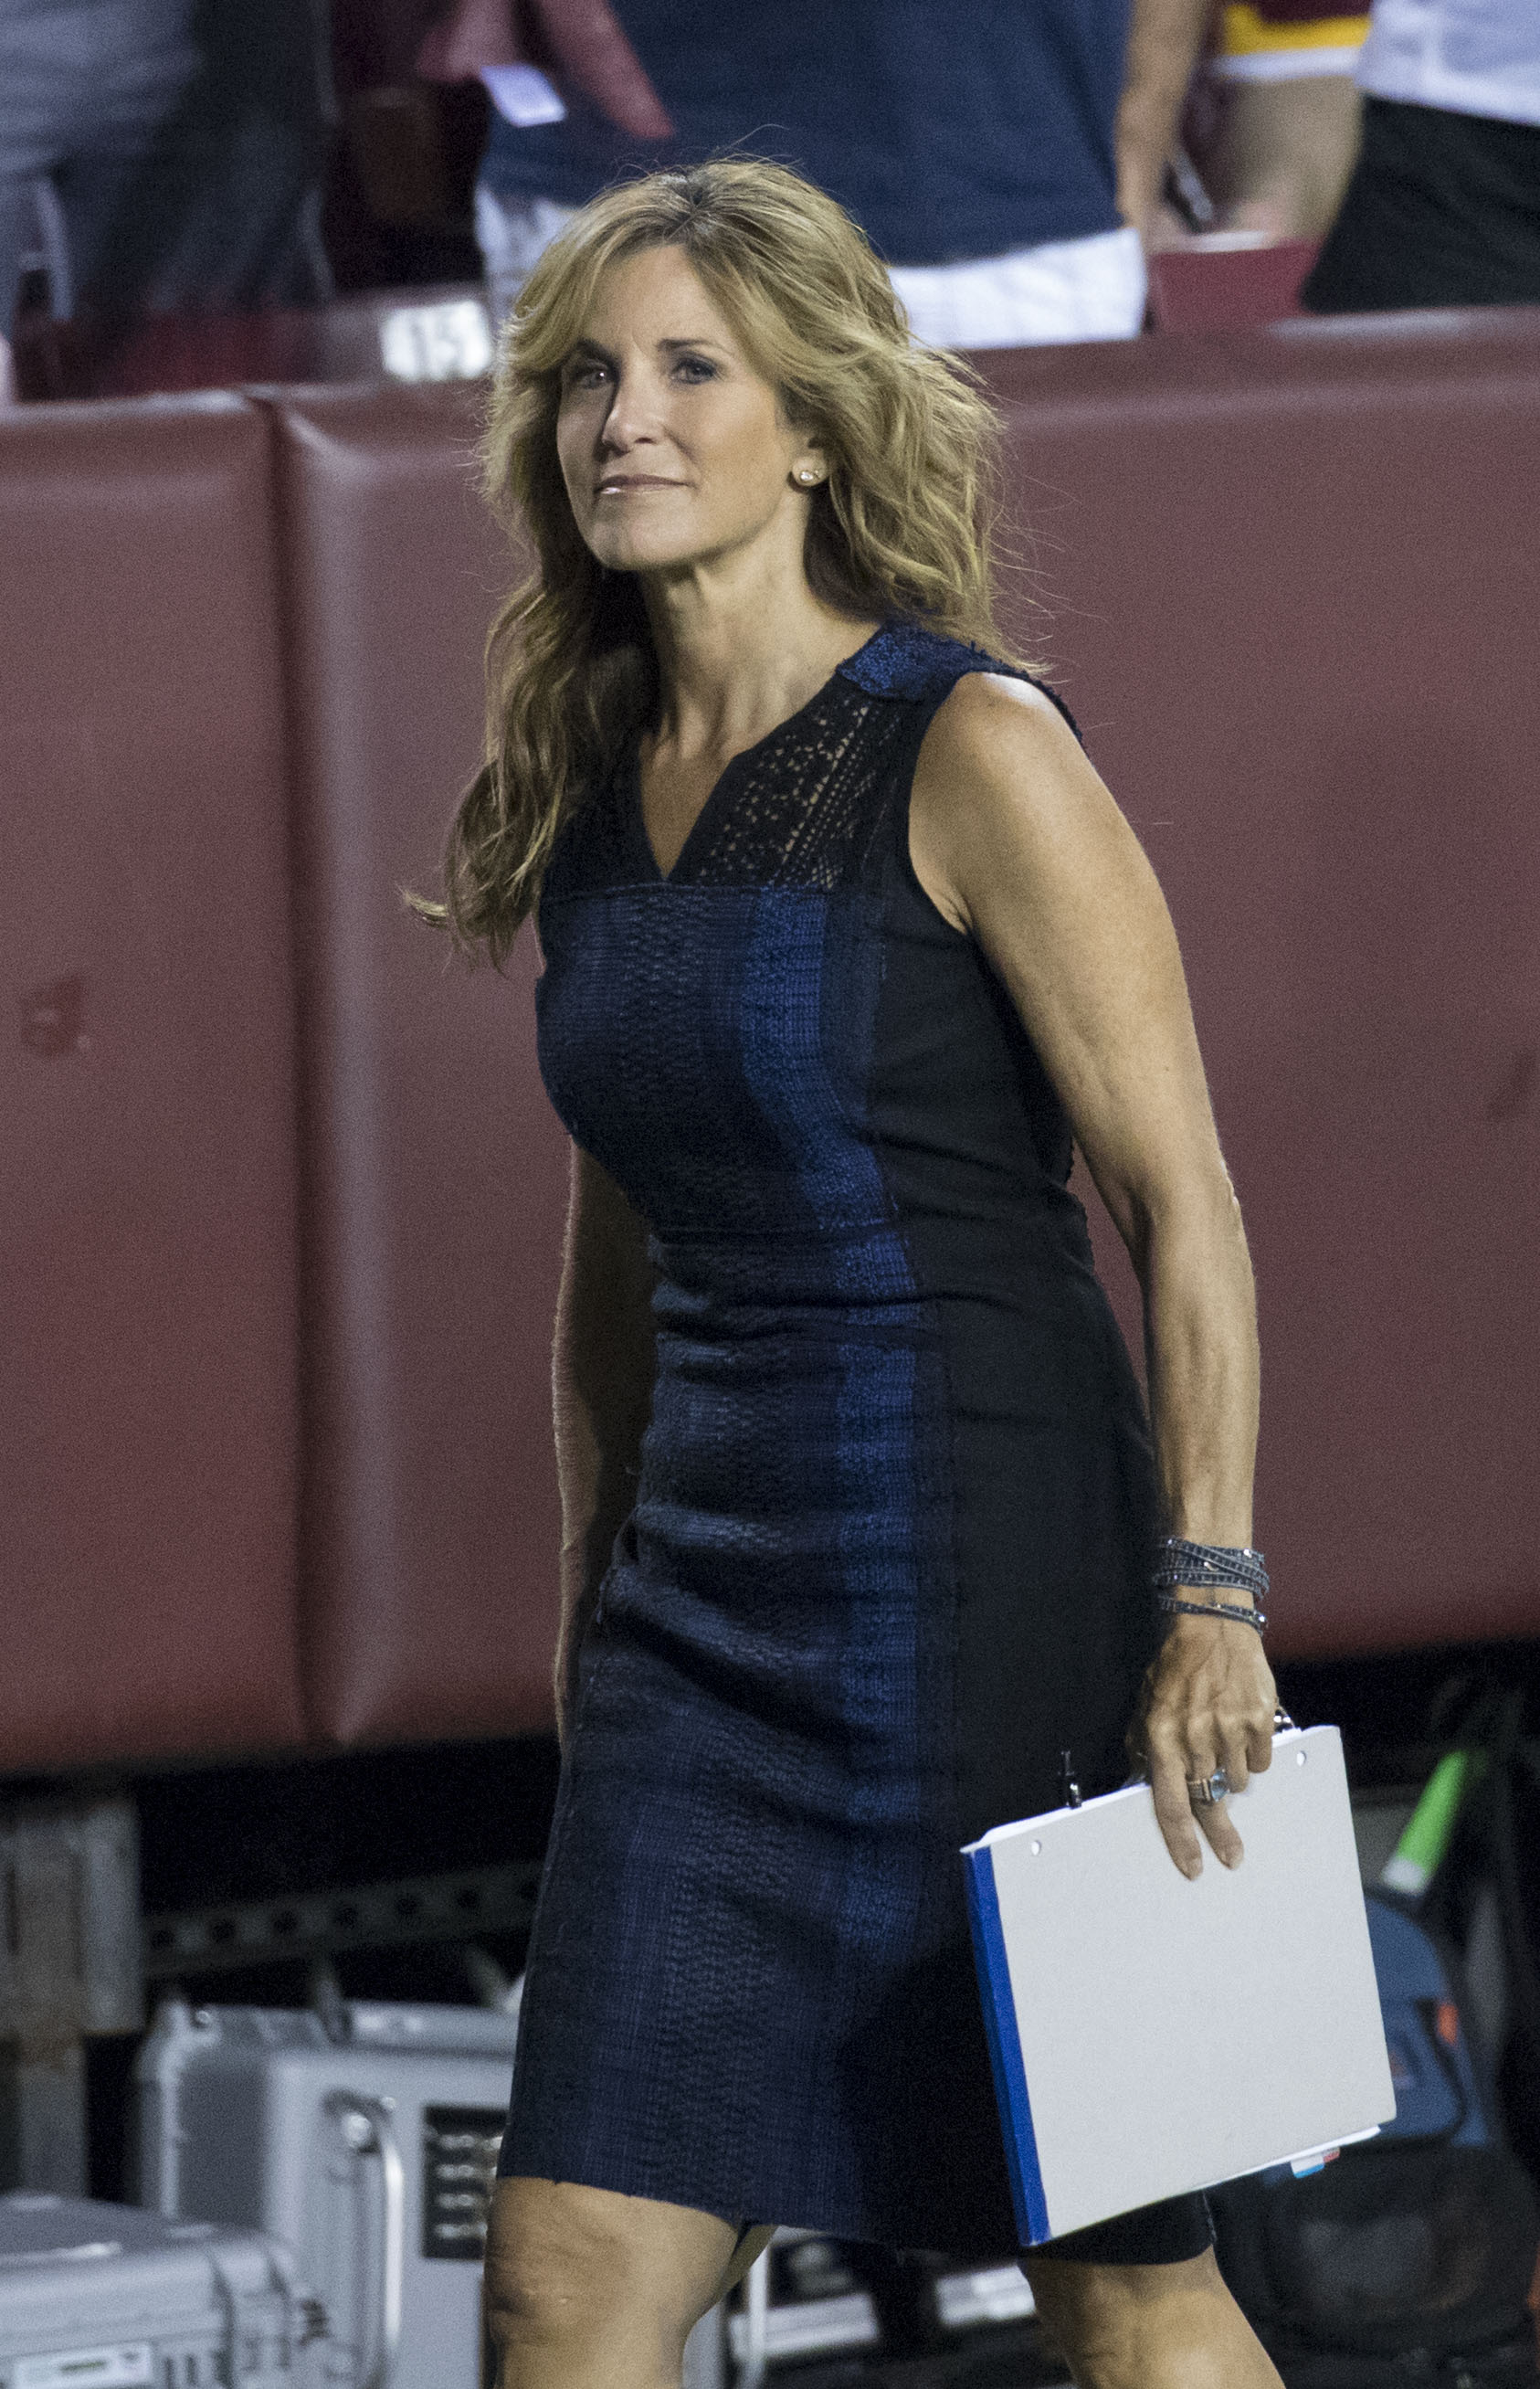 The 56-year old daughter of father (?) and mother(?) Suzy Kolber in 2021 photo. Suzy Kolber earned a  million dollar salary - leaving the net worth at 1 million in 2021